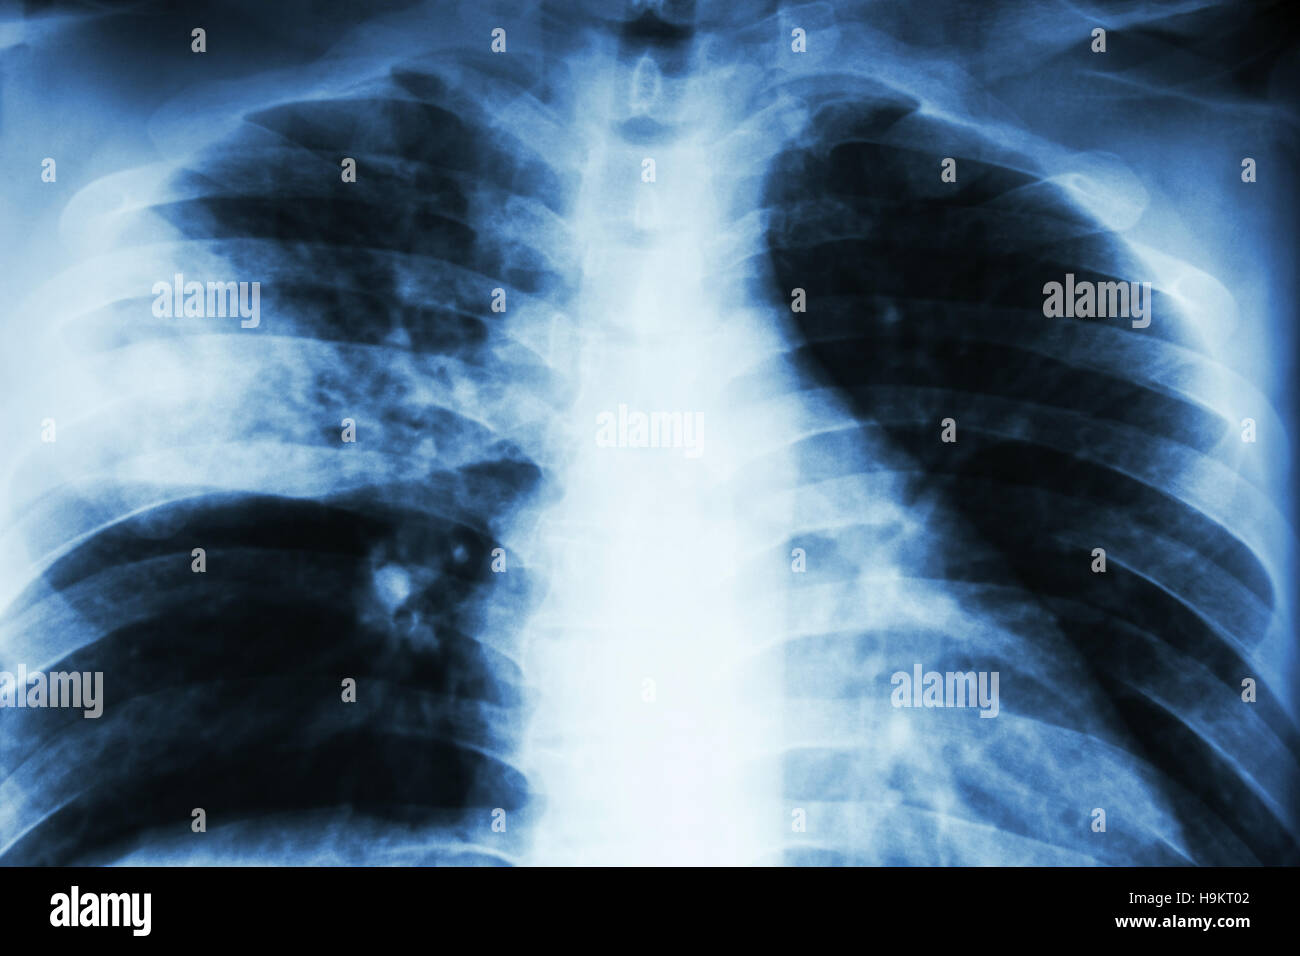 Lobar pneumonia . film chest x-ray show alveolar infiltration at right middle lobe due to tuberculosis infection - Stock Image